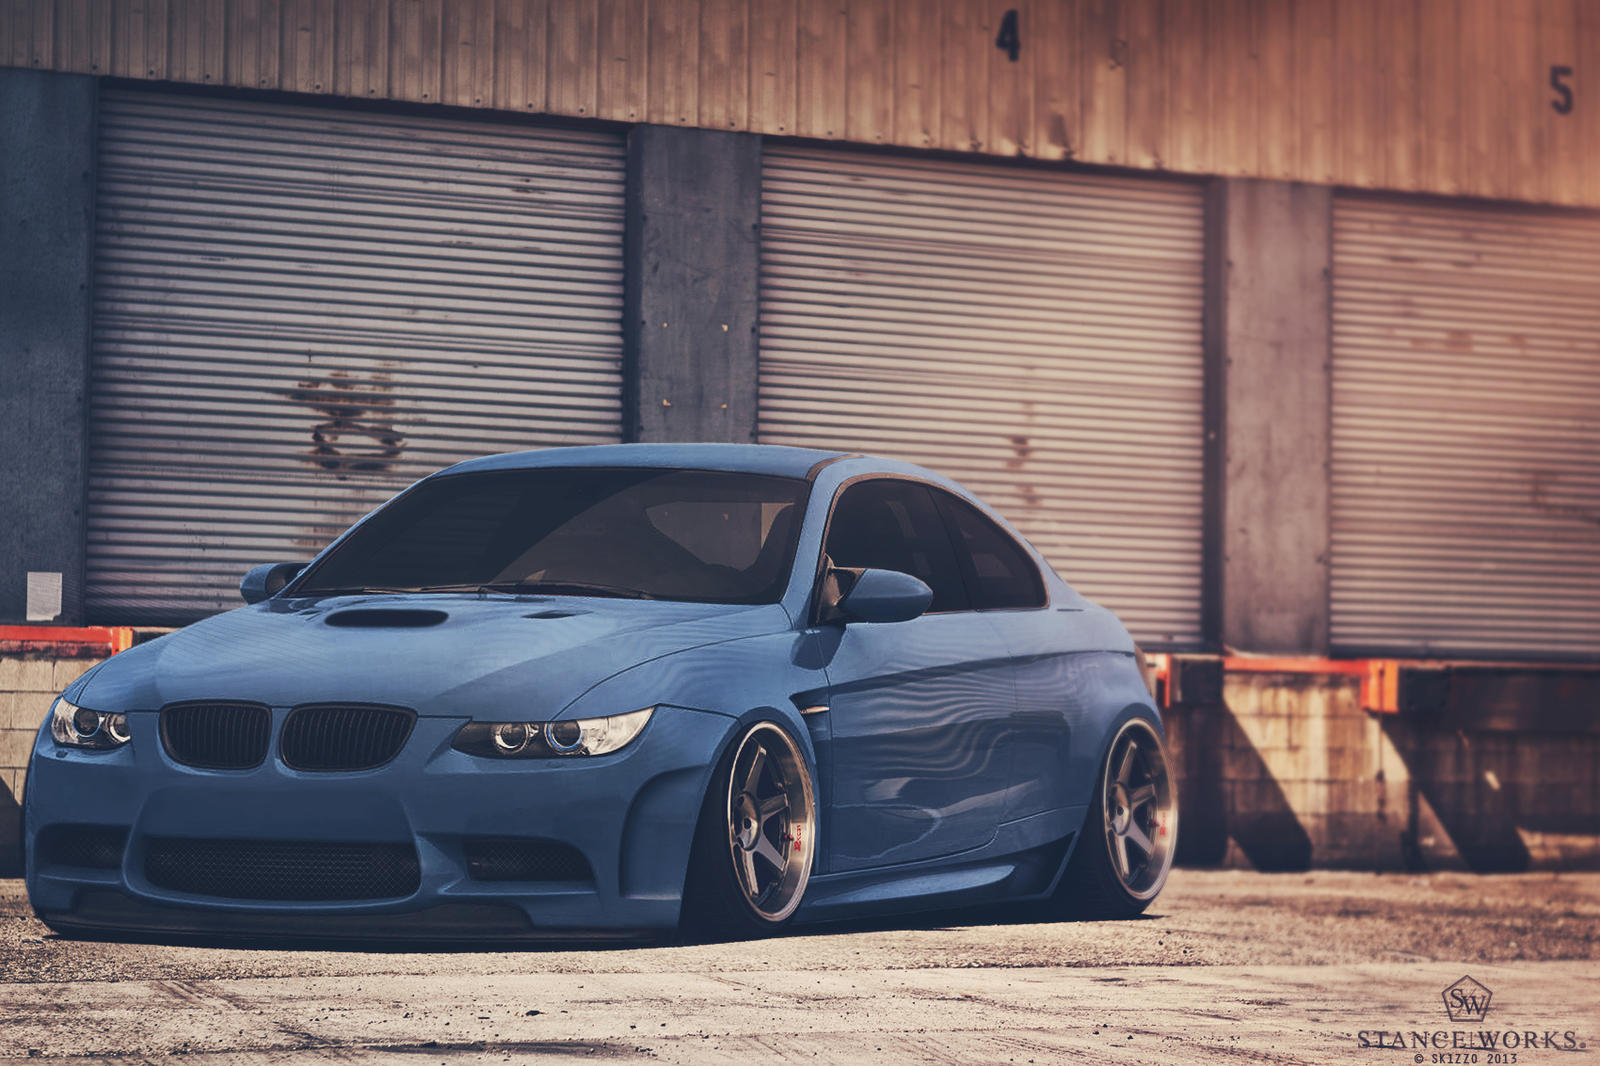 Stanced Bmw M3 92 Wide Boy By Sk1zzo On Deviantart